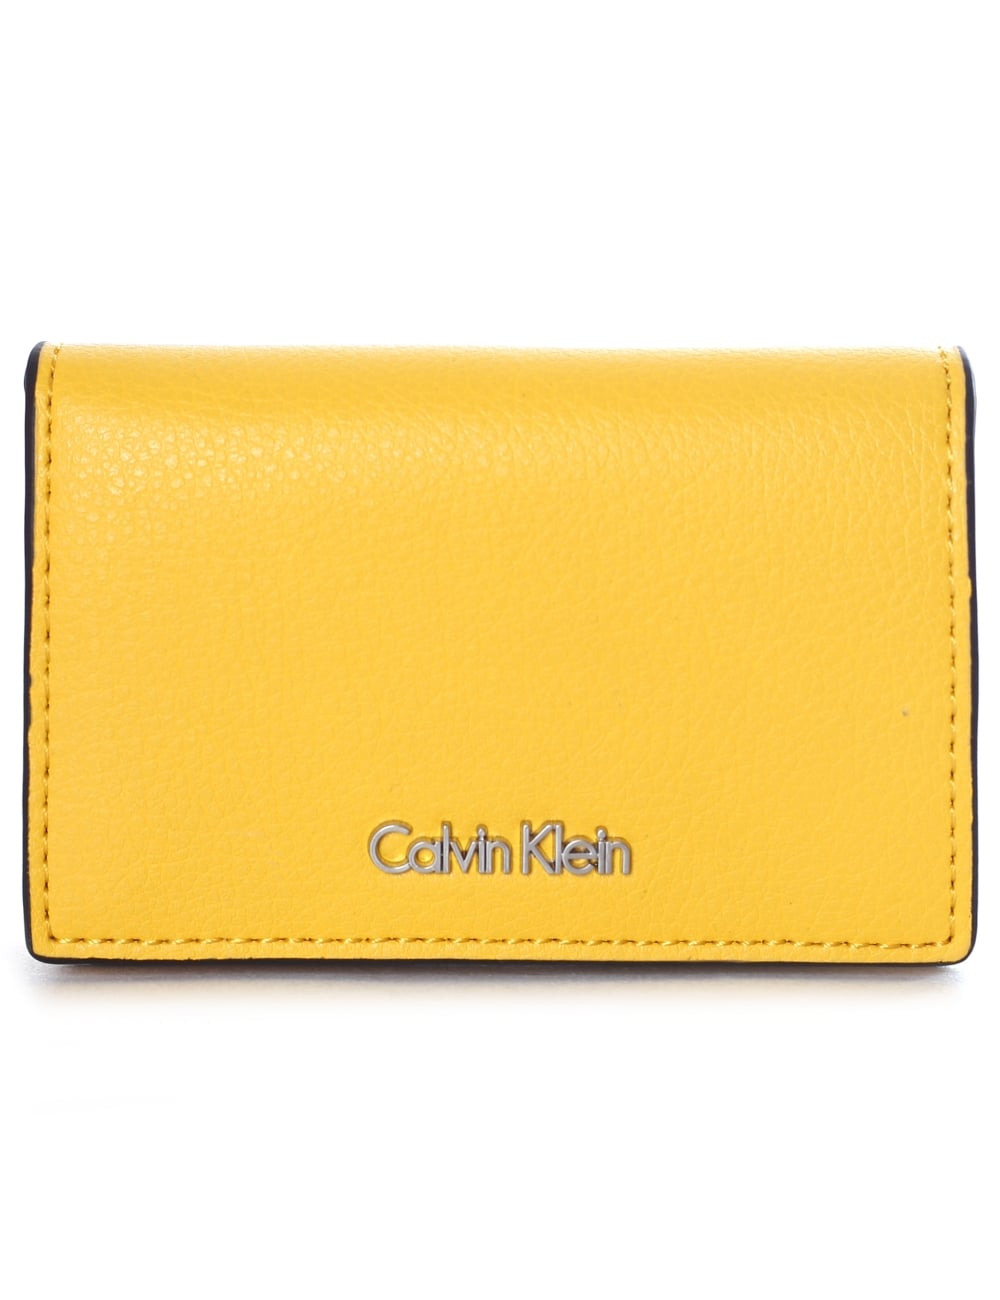 Calvin Klein Women\'s Frame Card Holder